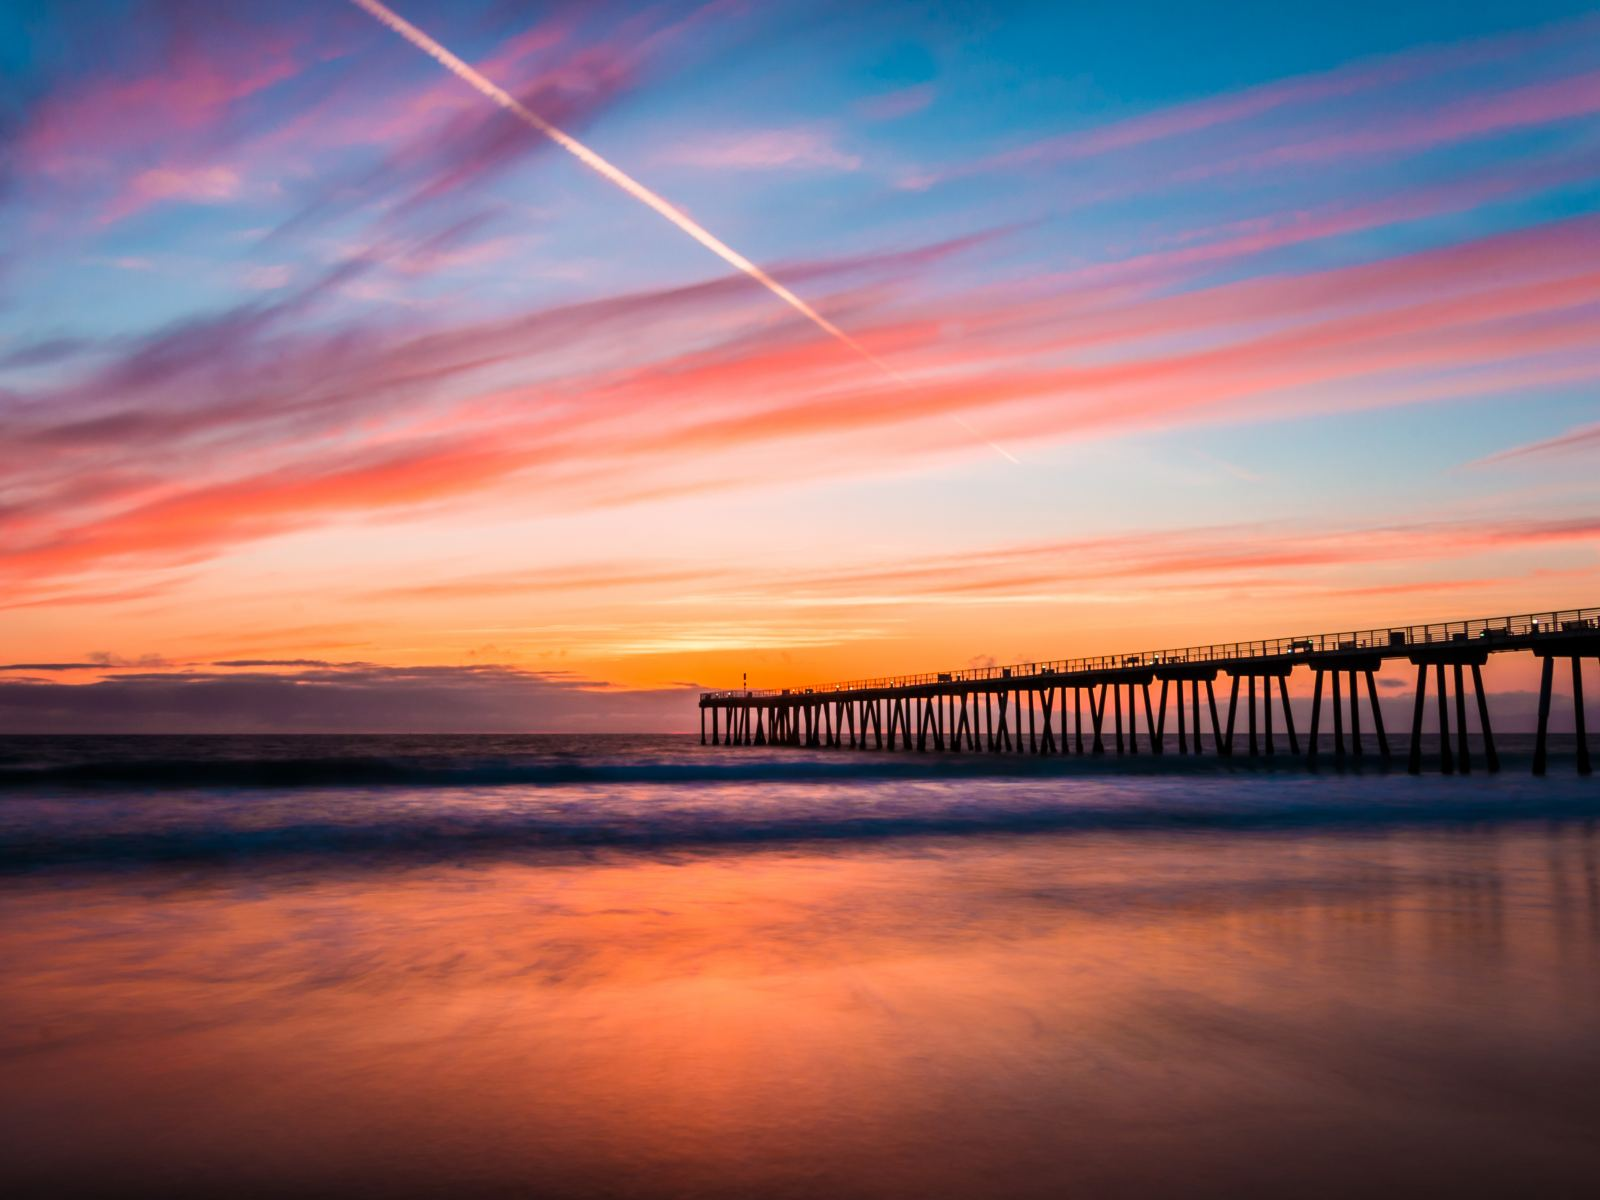 sunset angeles los beach pier photographs places hermosa locations chill sunsets sunrise sun beaches california cute